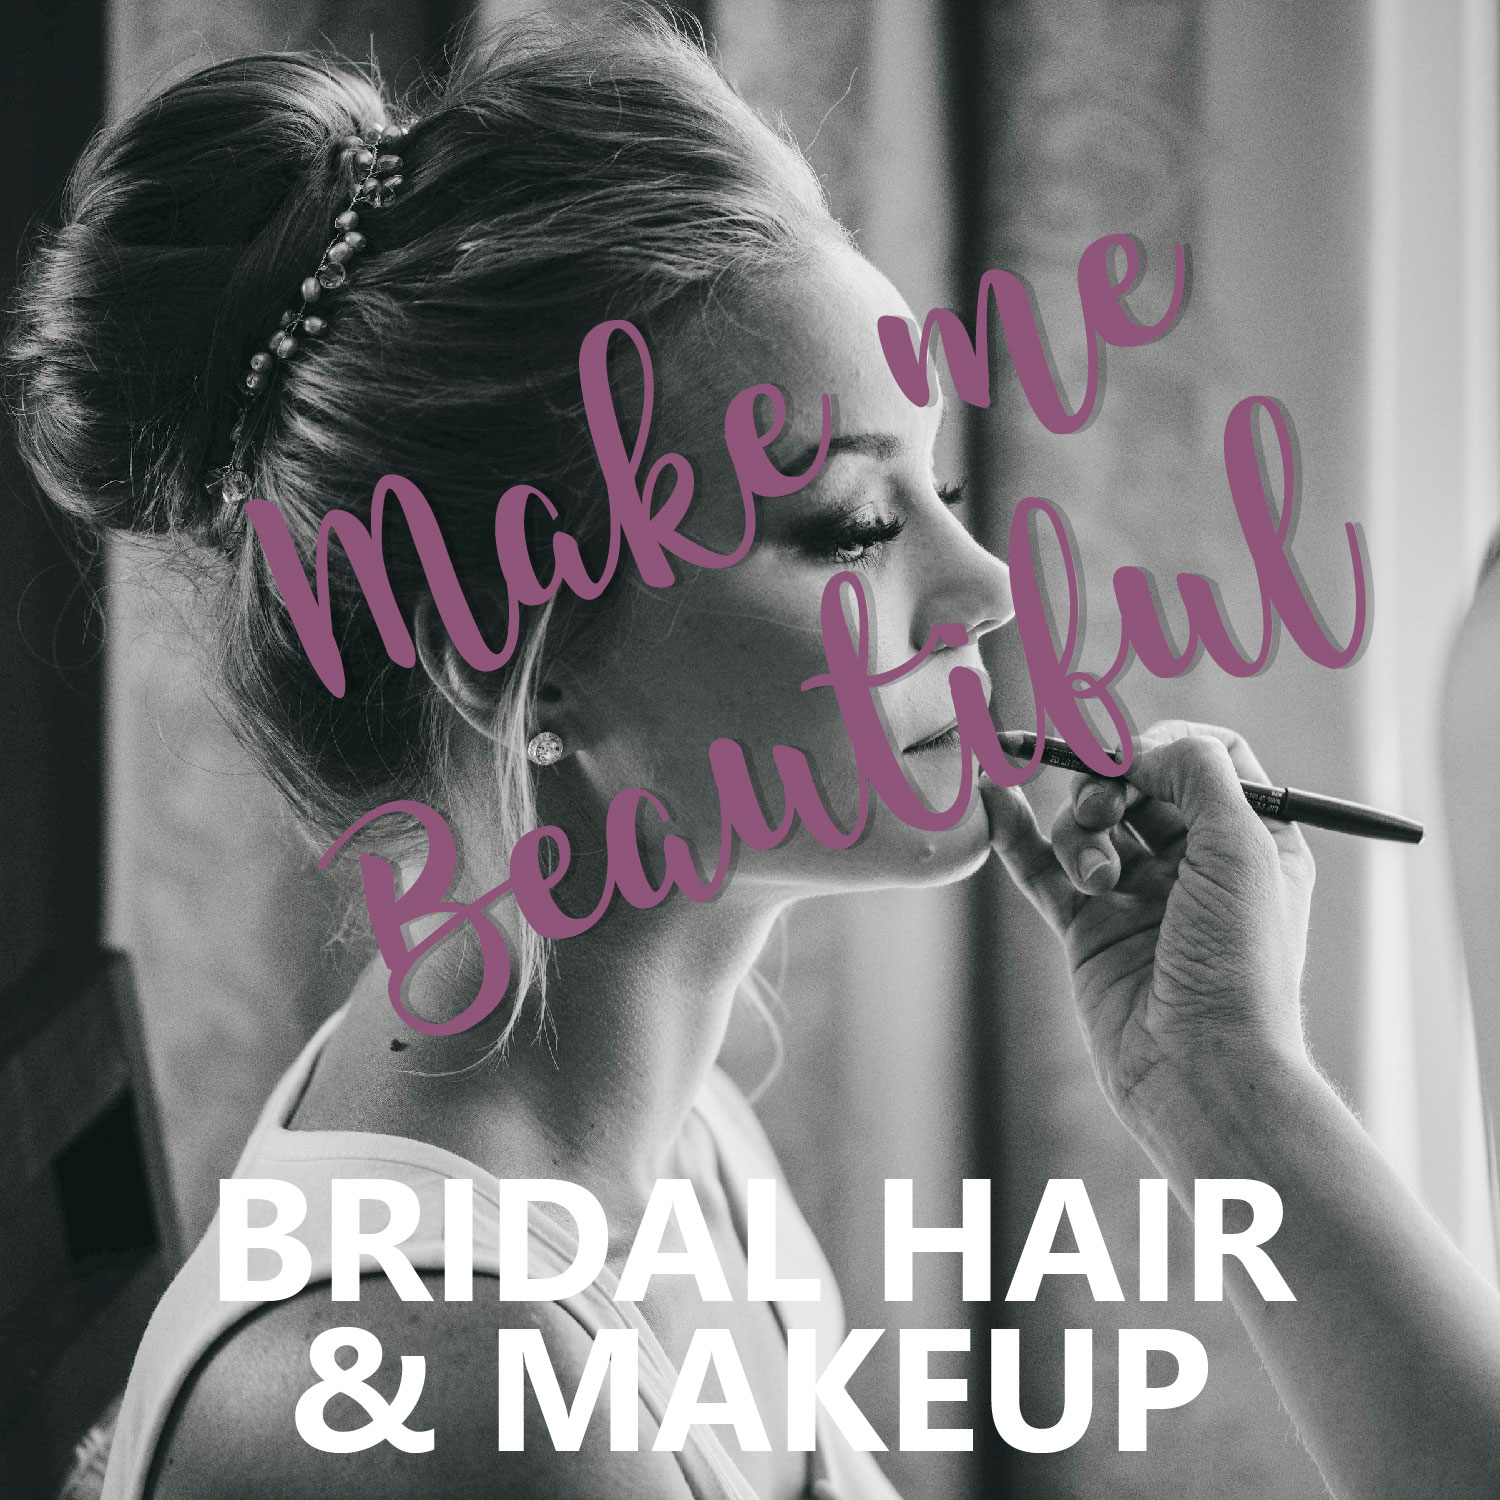 4 BRIDAL HAIR AND MAKEUP - Bridal Hair & Makeup